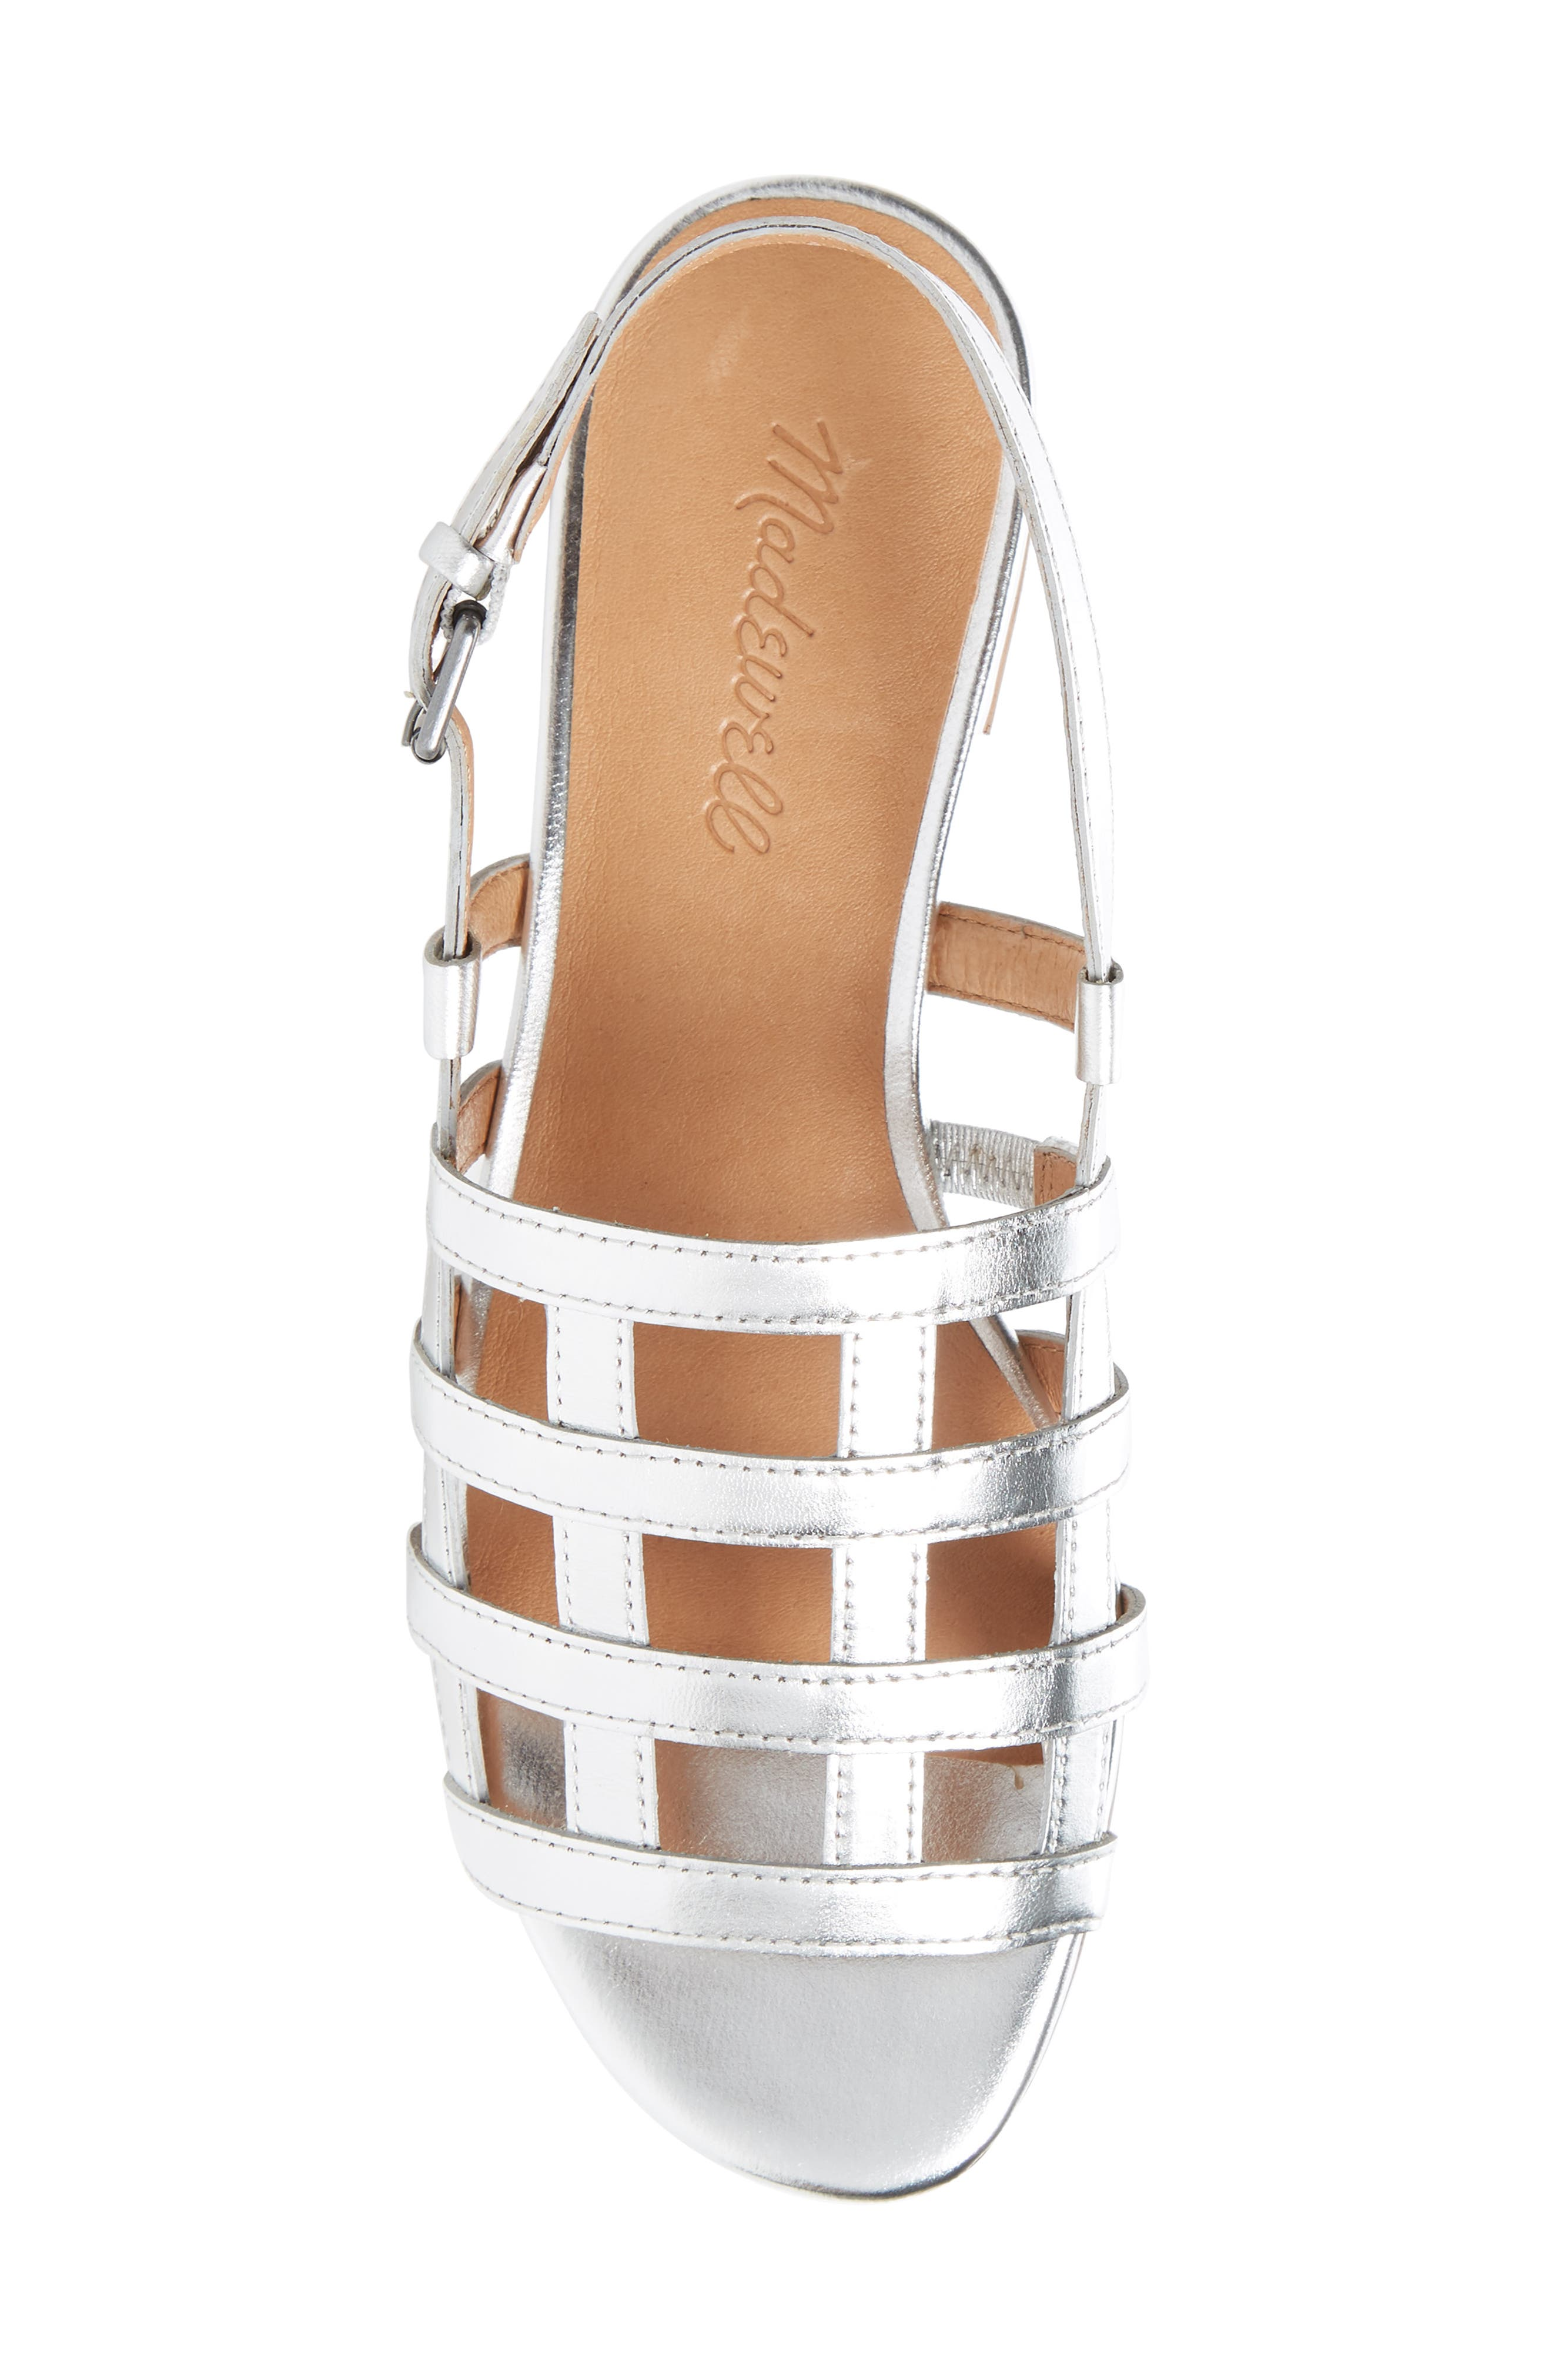 Rowan Cage Sandal,                             Alternate thumbnail 5, color,                             Silver Metallic Leather